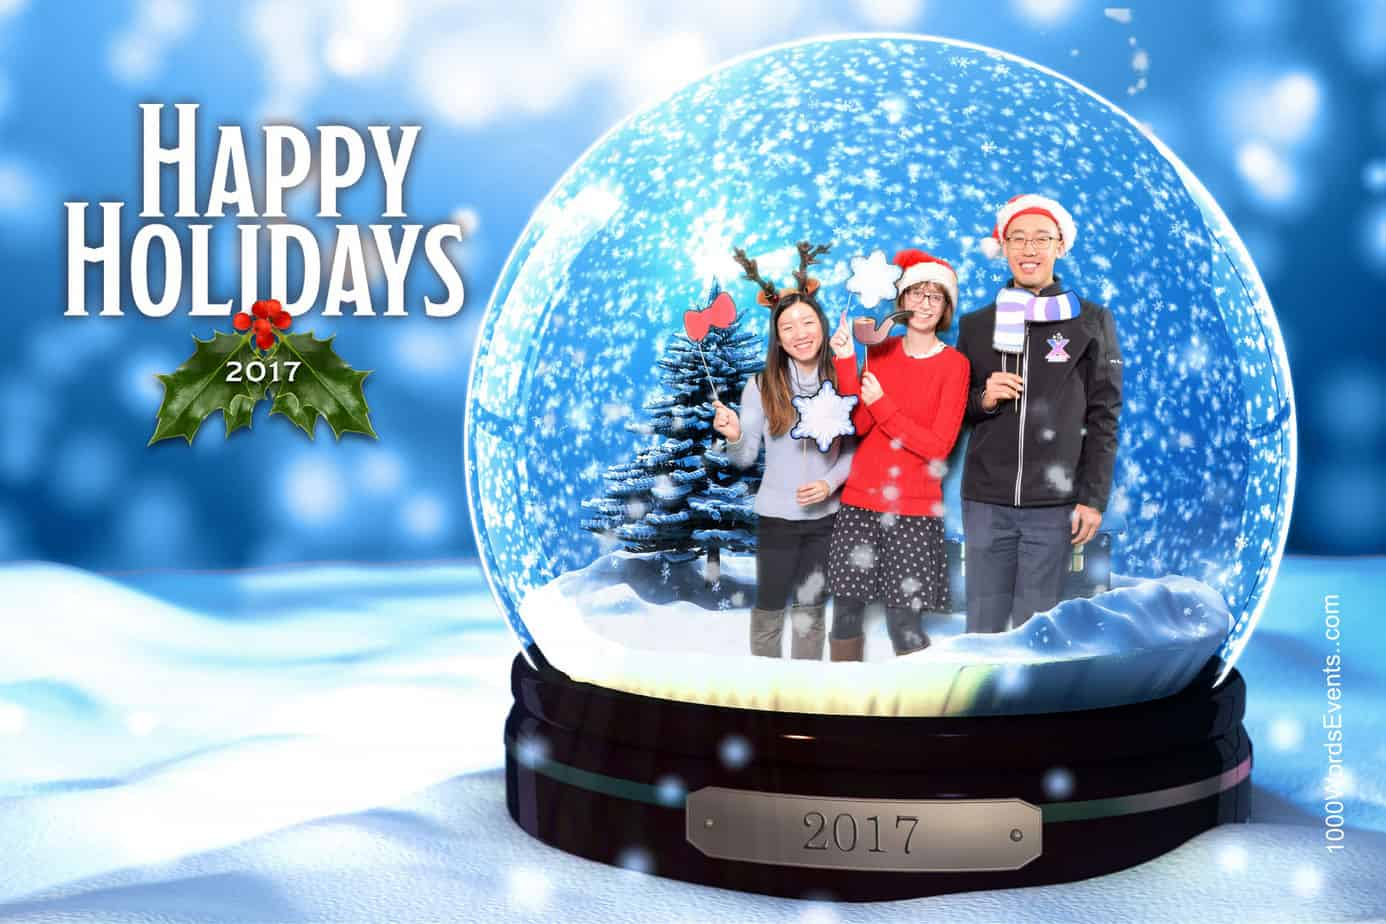 3 people in a snow globe